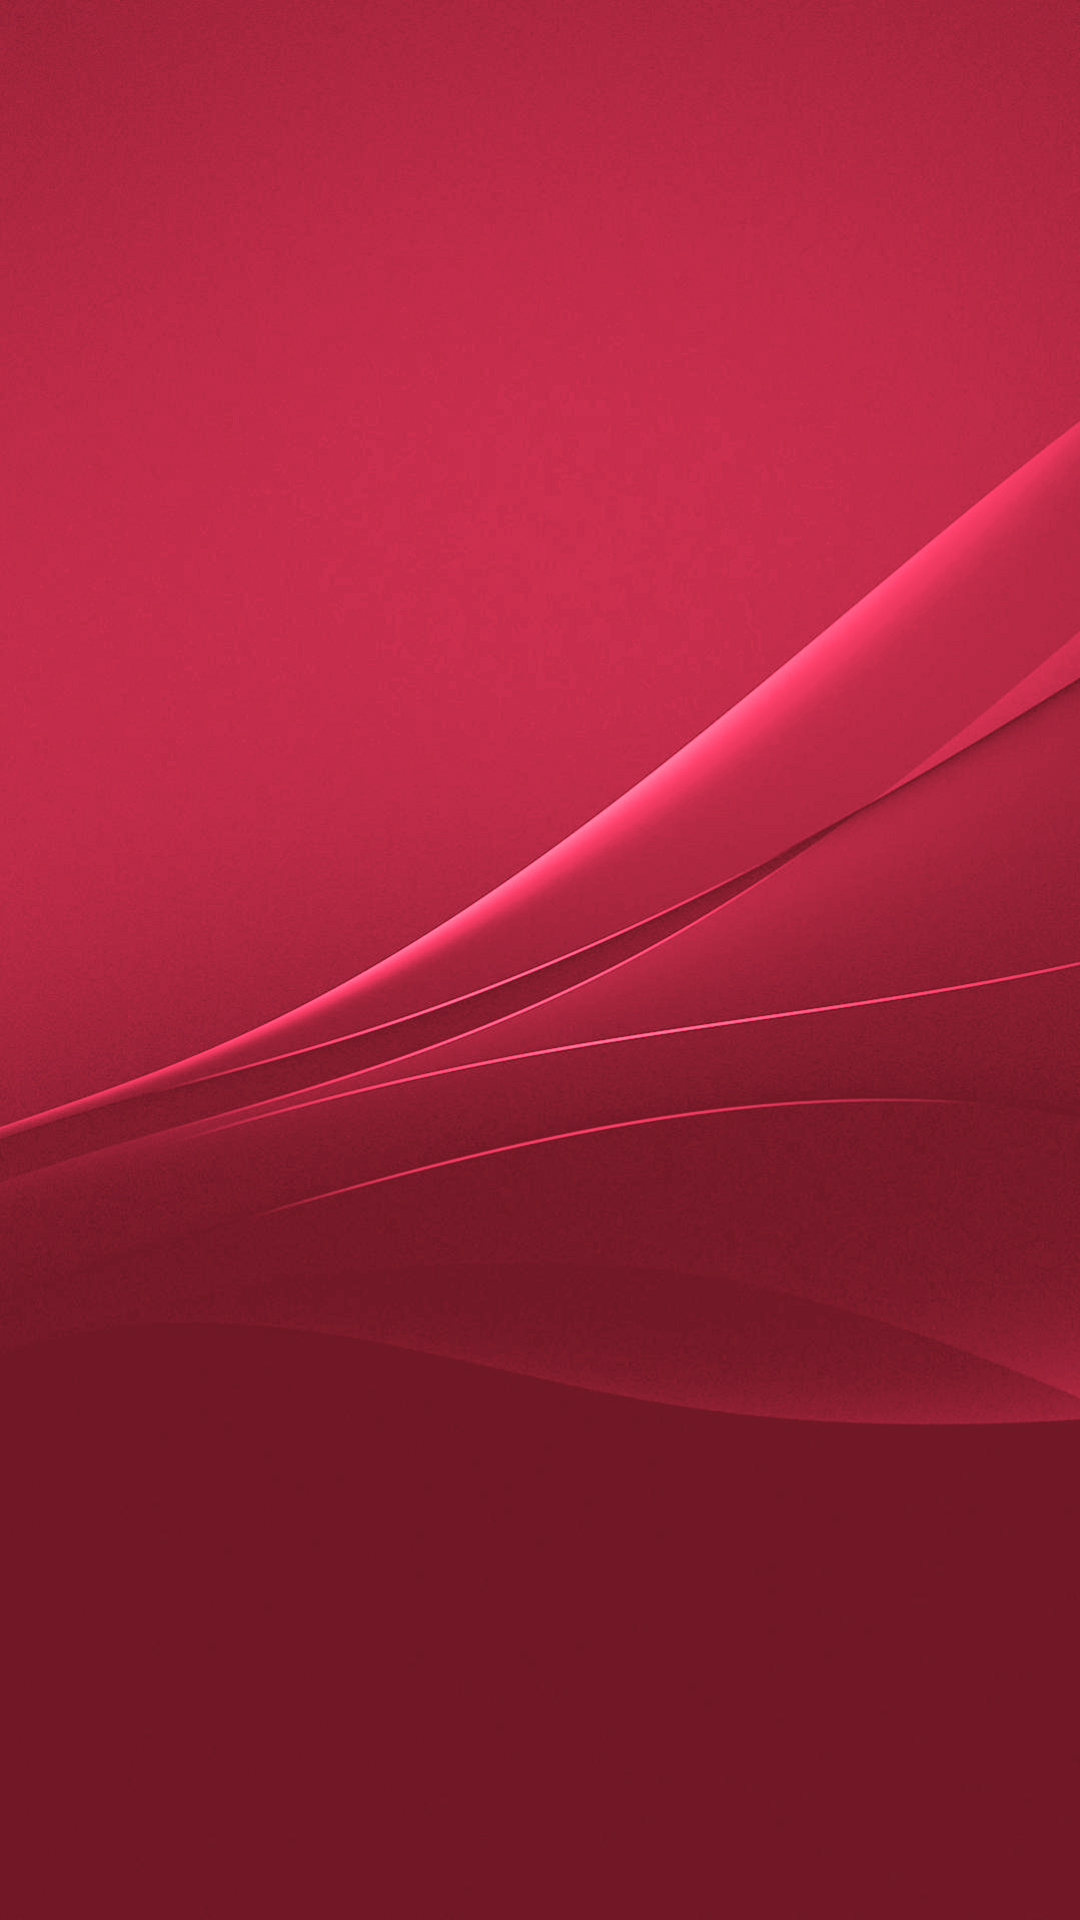 Pink Xperia Lollipop Experience Flow Wallpaper Gizmo Bolt